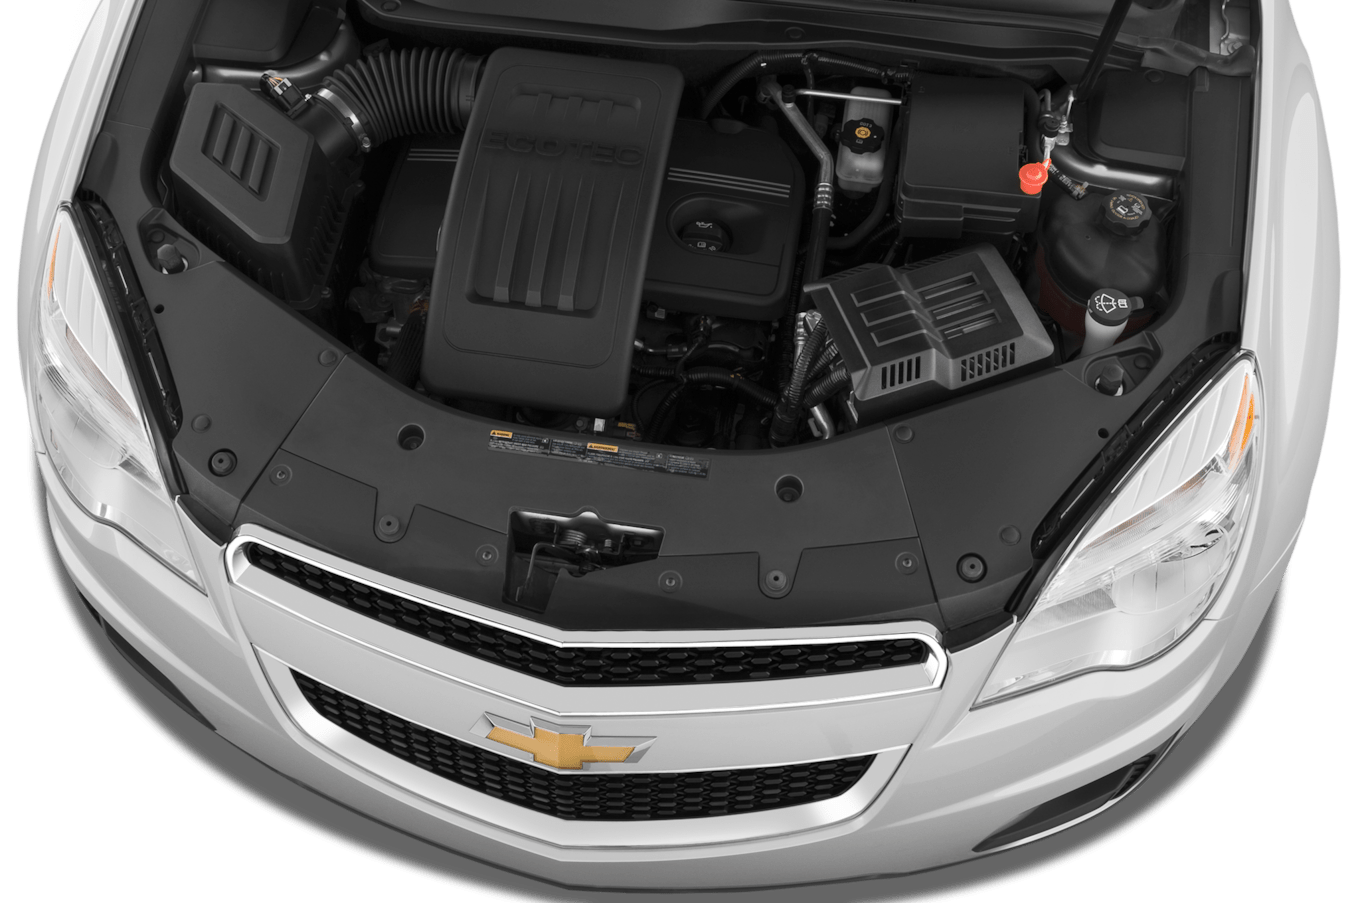 2012 Chevy Engine Diagram 1 8 2013 Chevrolet Equinox Reviews Research Equinox Prices